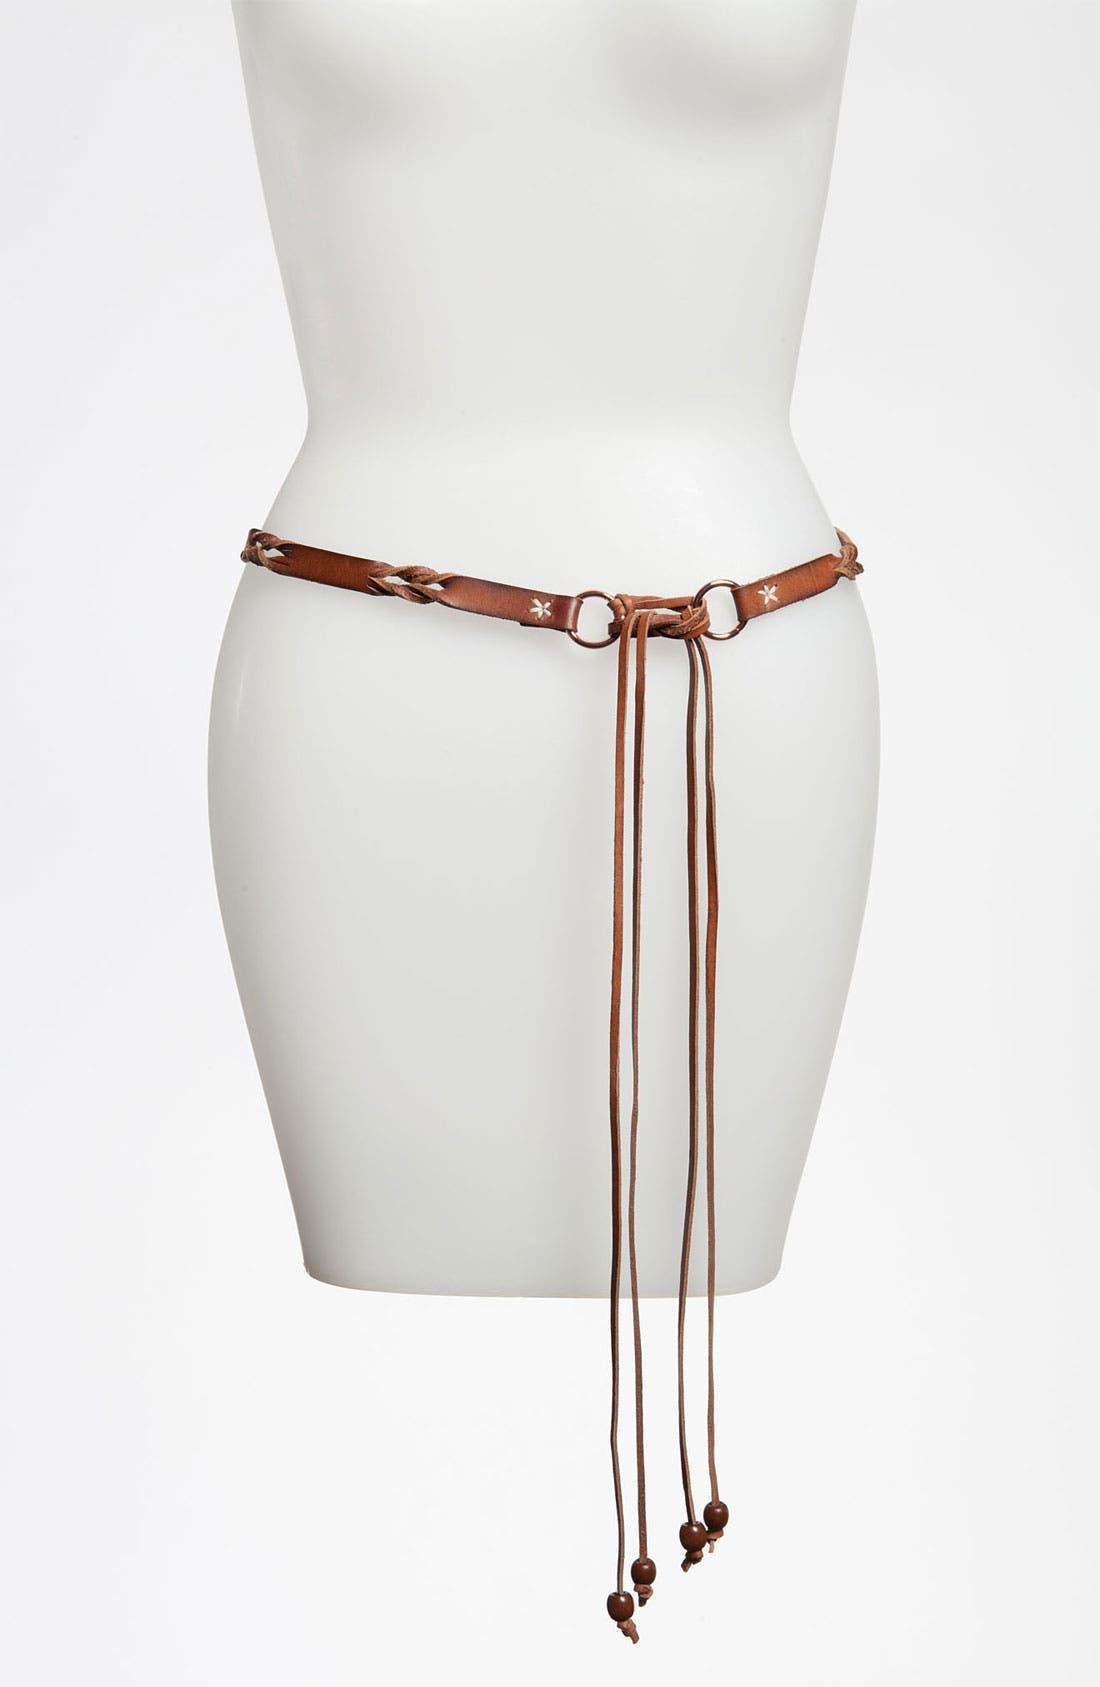 Main Image - Linea Pelle Patterned Leather Belt